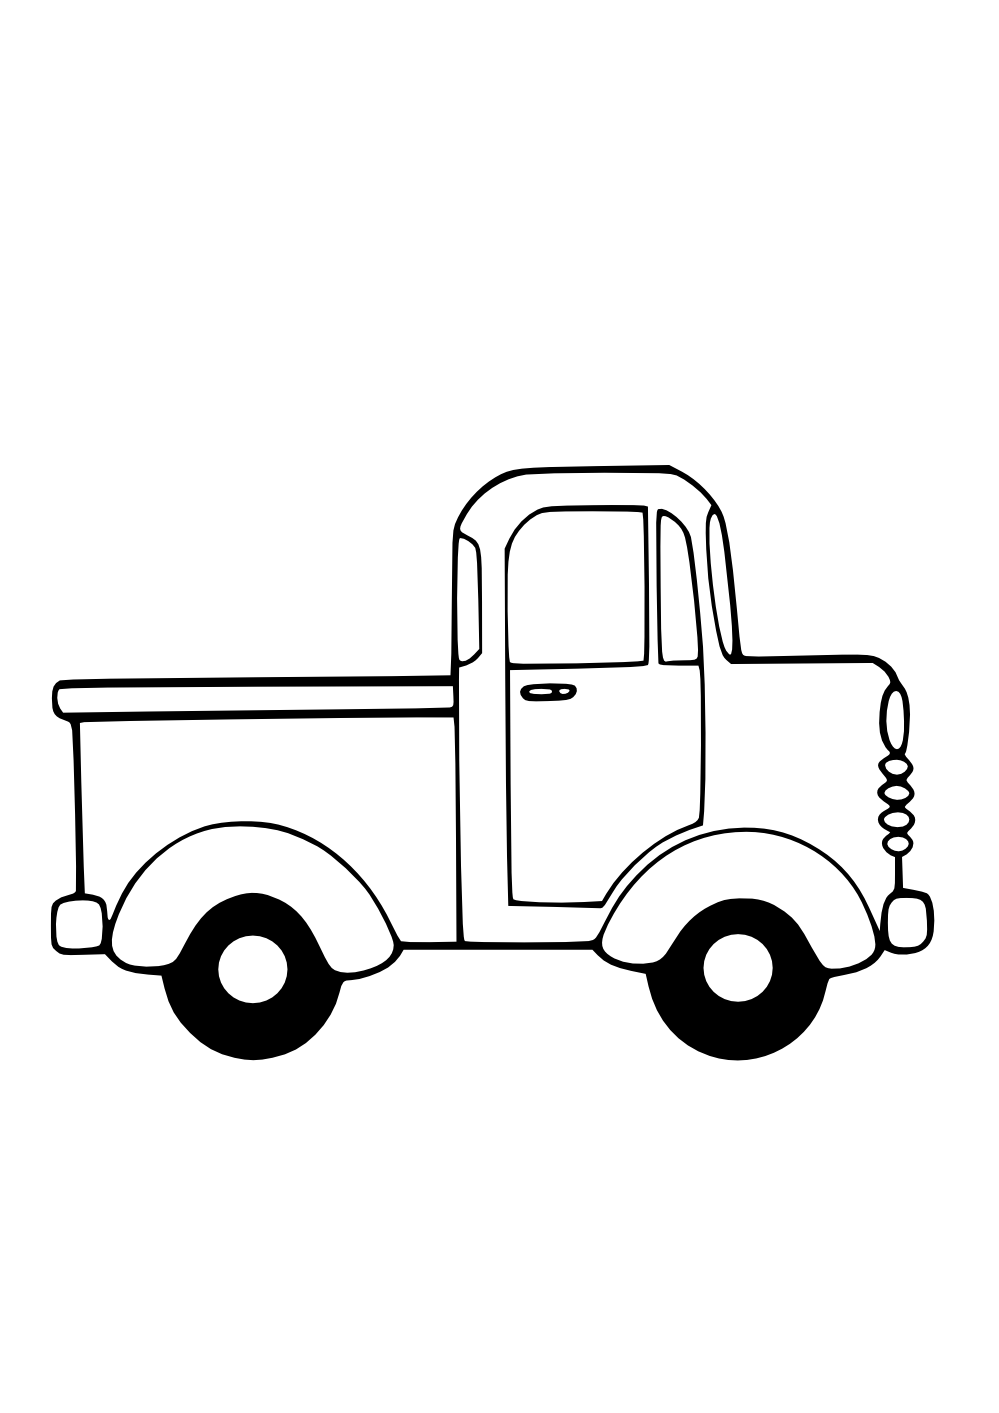 Delivery Truck Clipart Black And White | Clipart Panda - Free ...